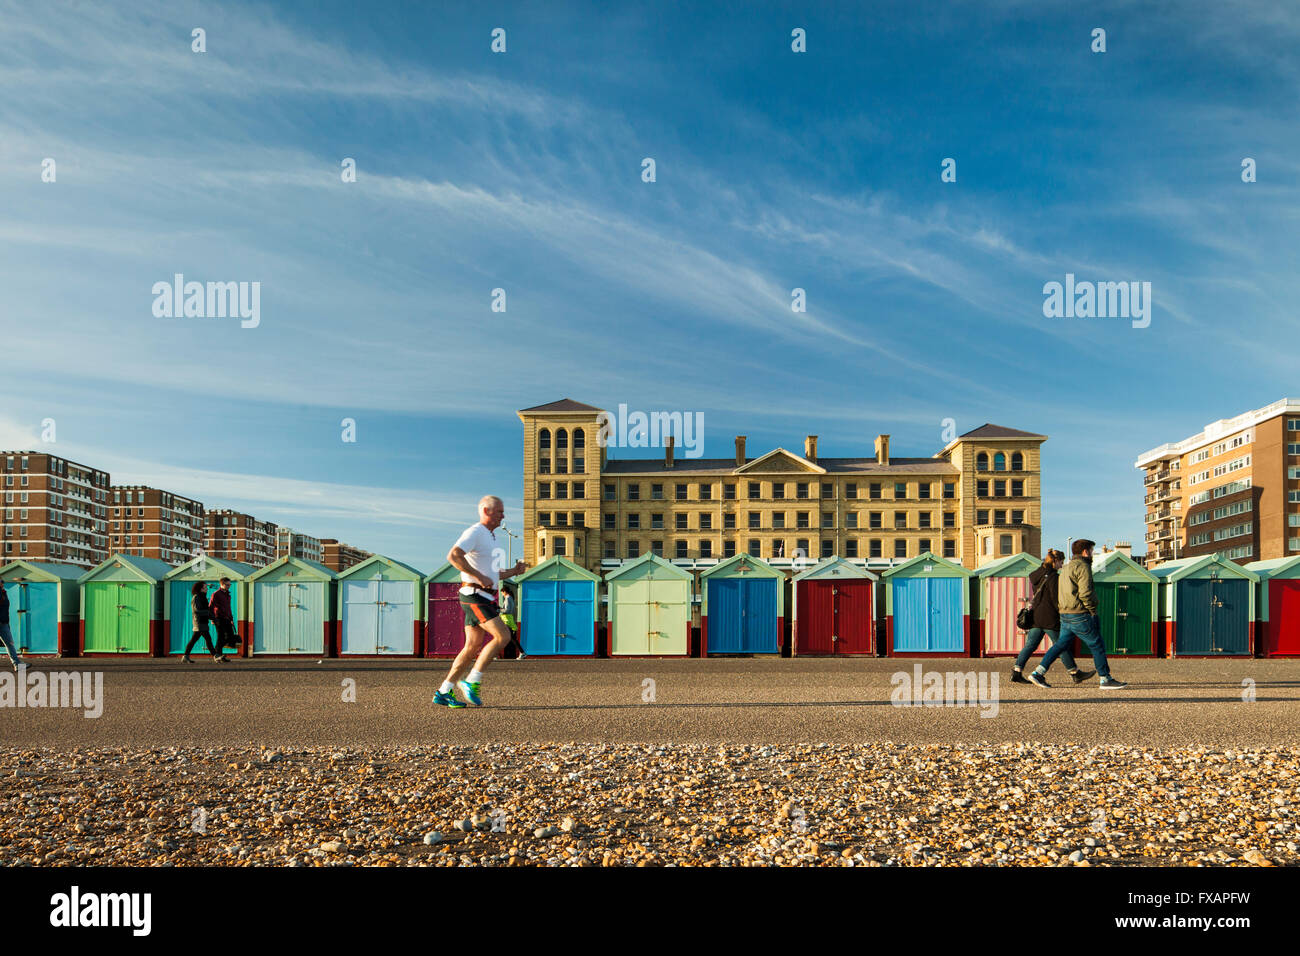 Colourful beach huts in Hove, East Sussex, England. - Stock Image